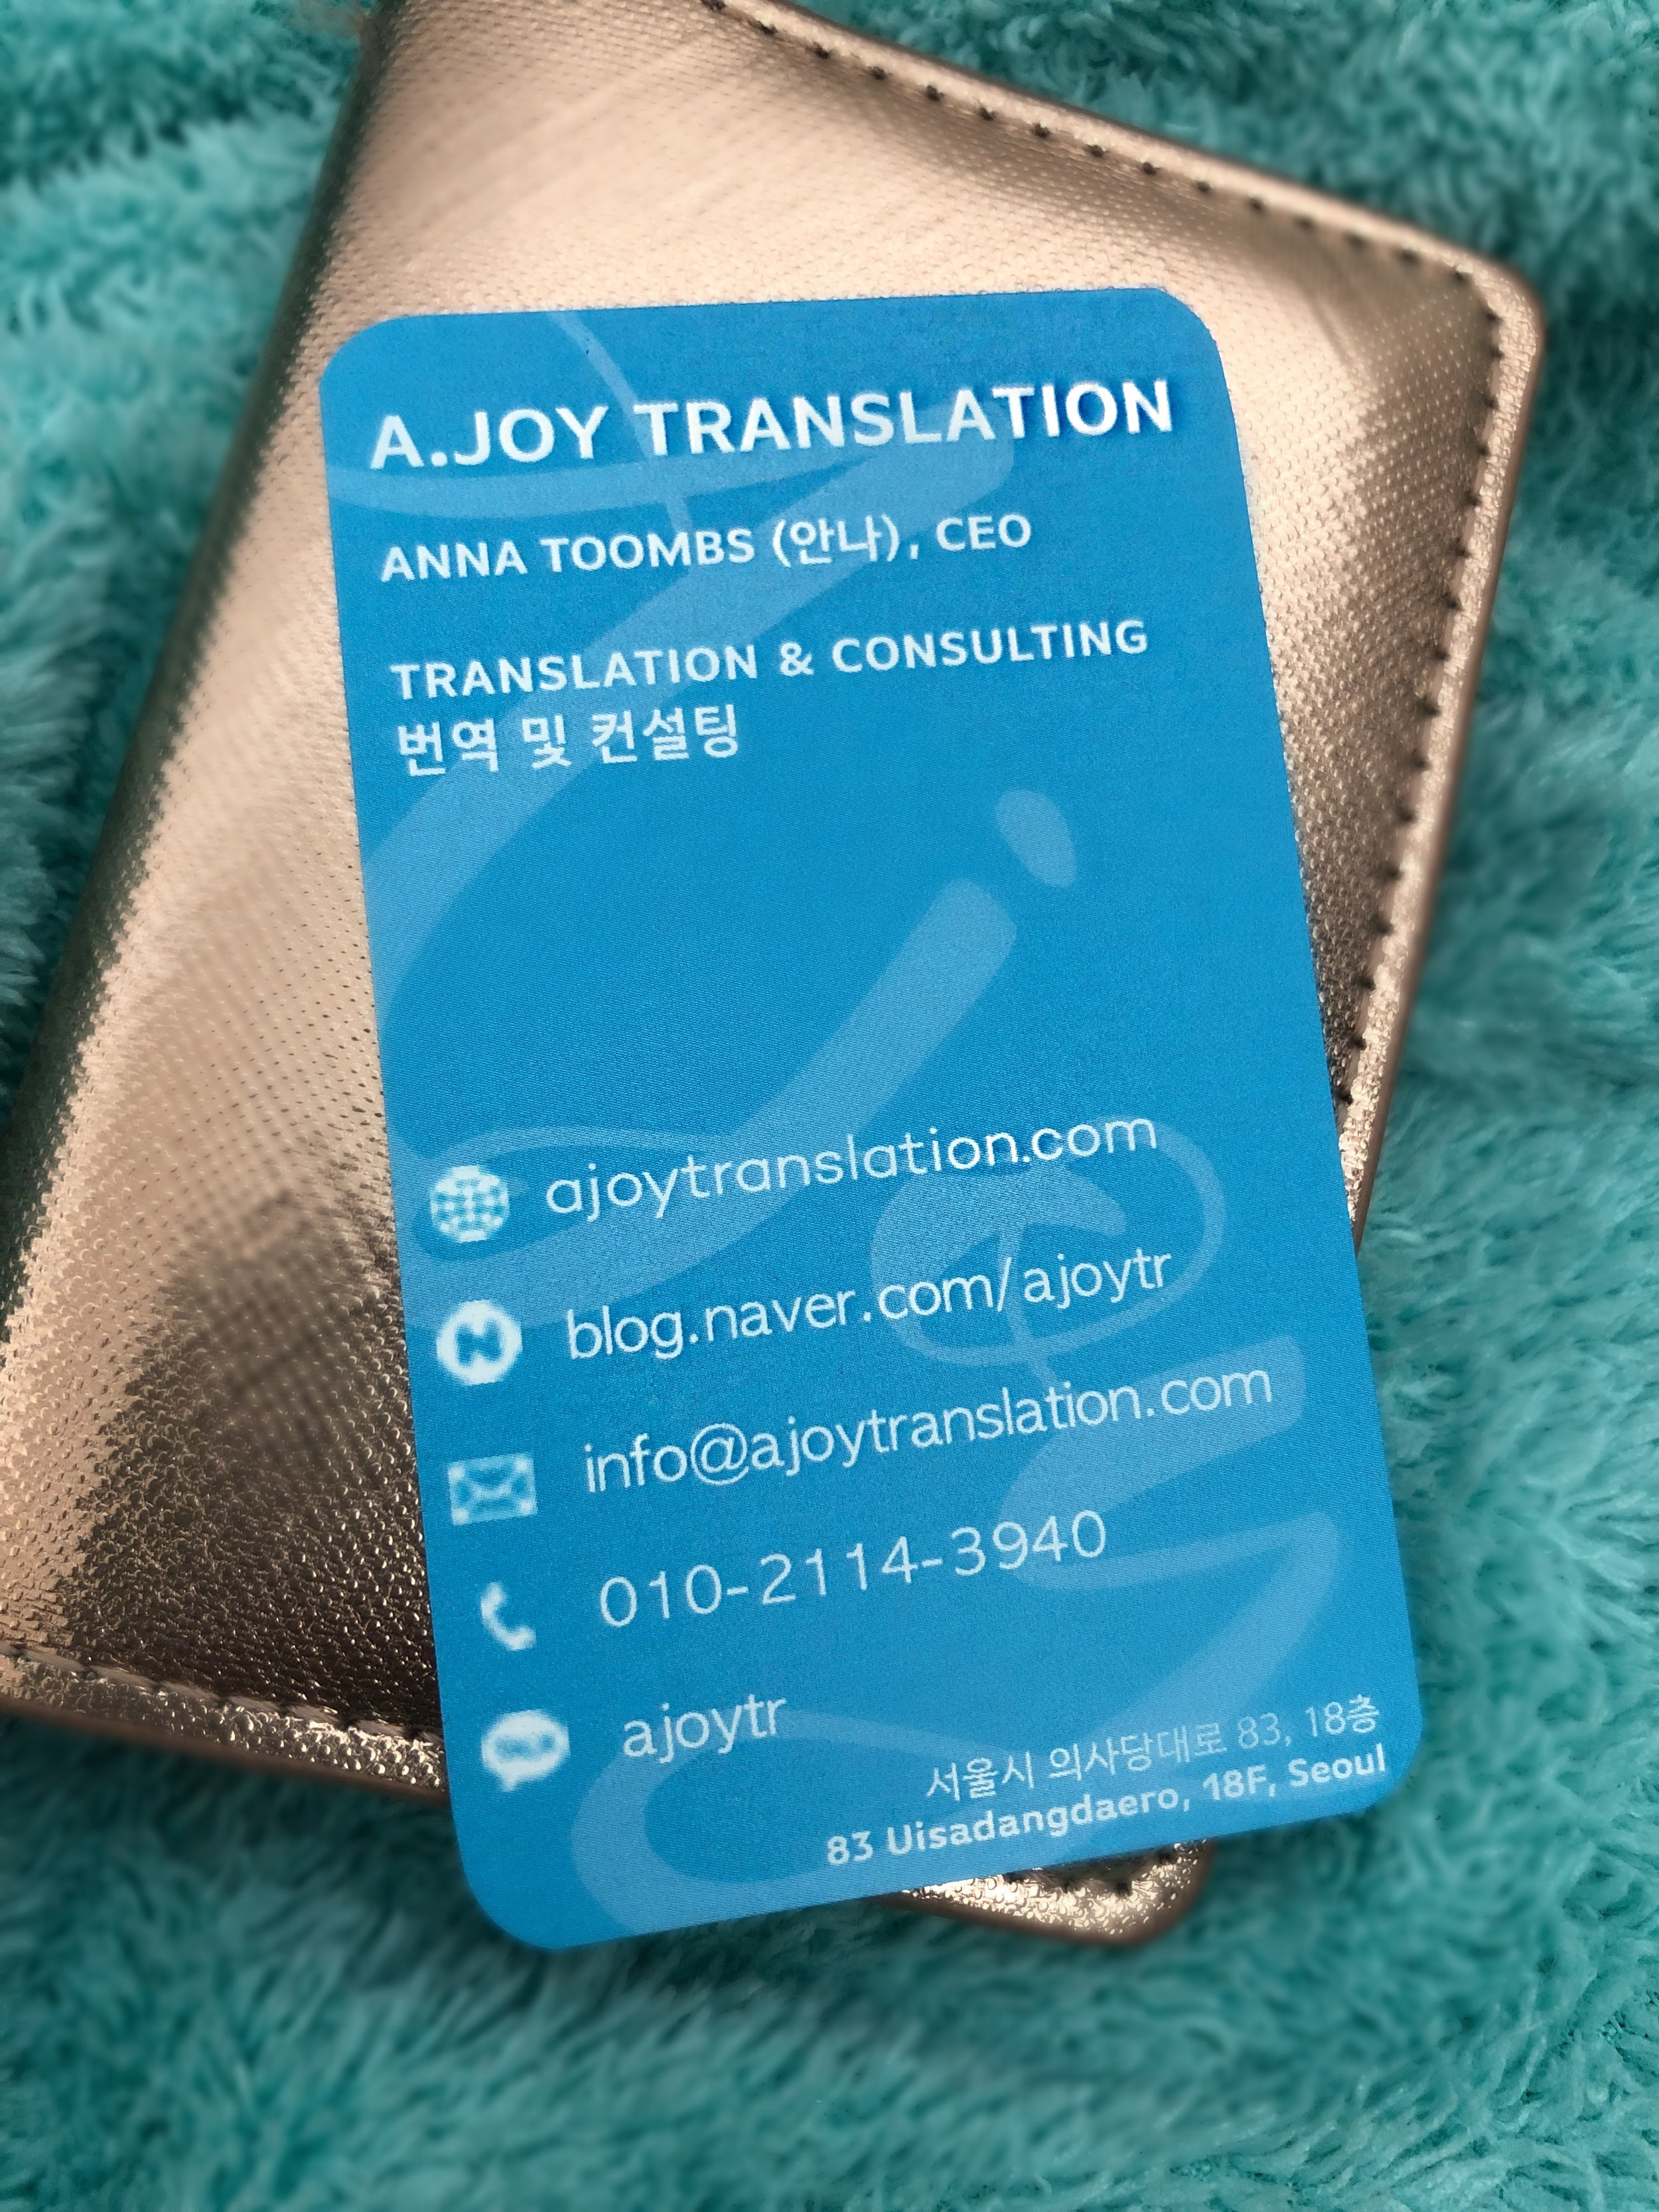 AJoyTranslation business card.JPG